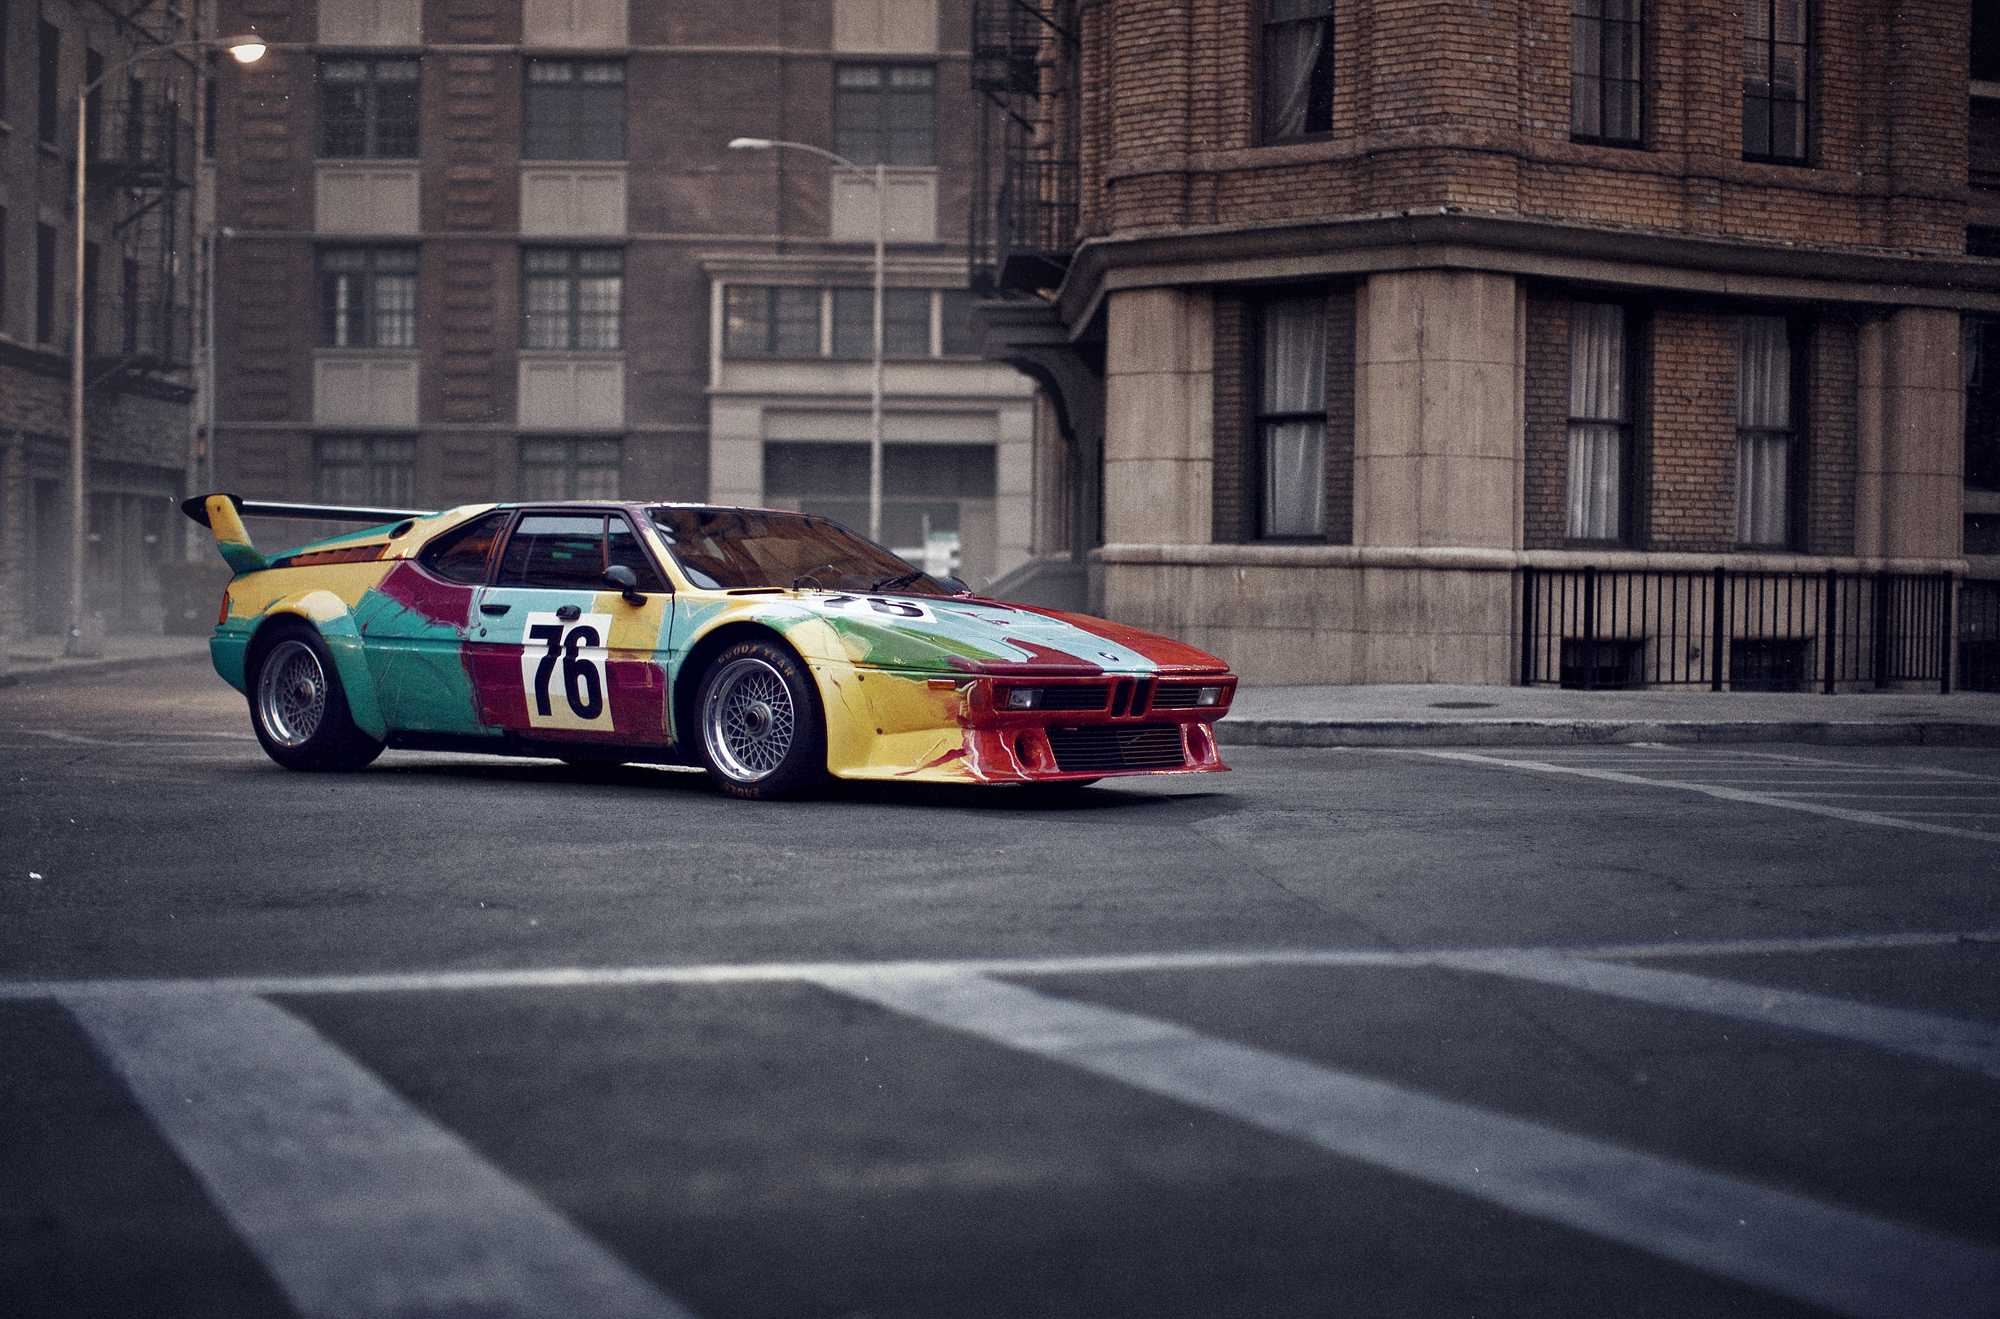 BMW Art Cars: 5 of our favourite works of moving art